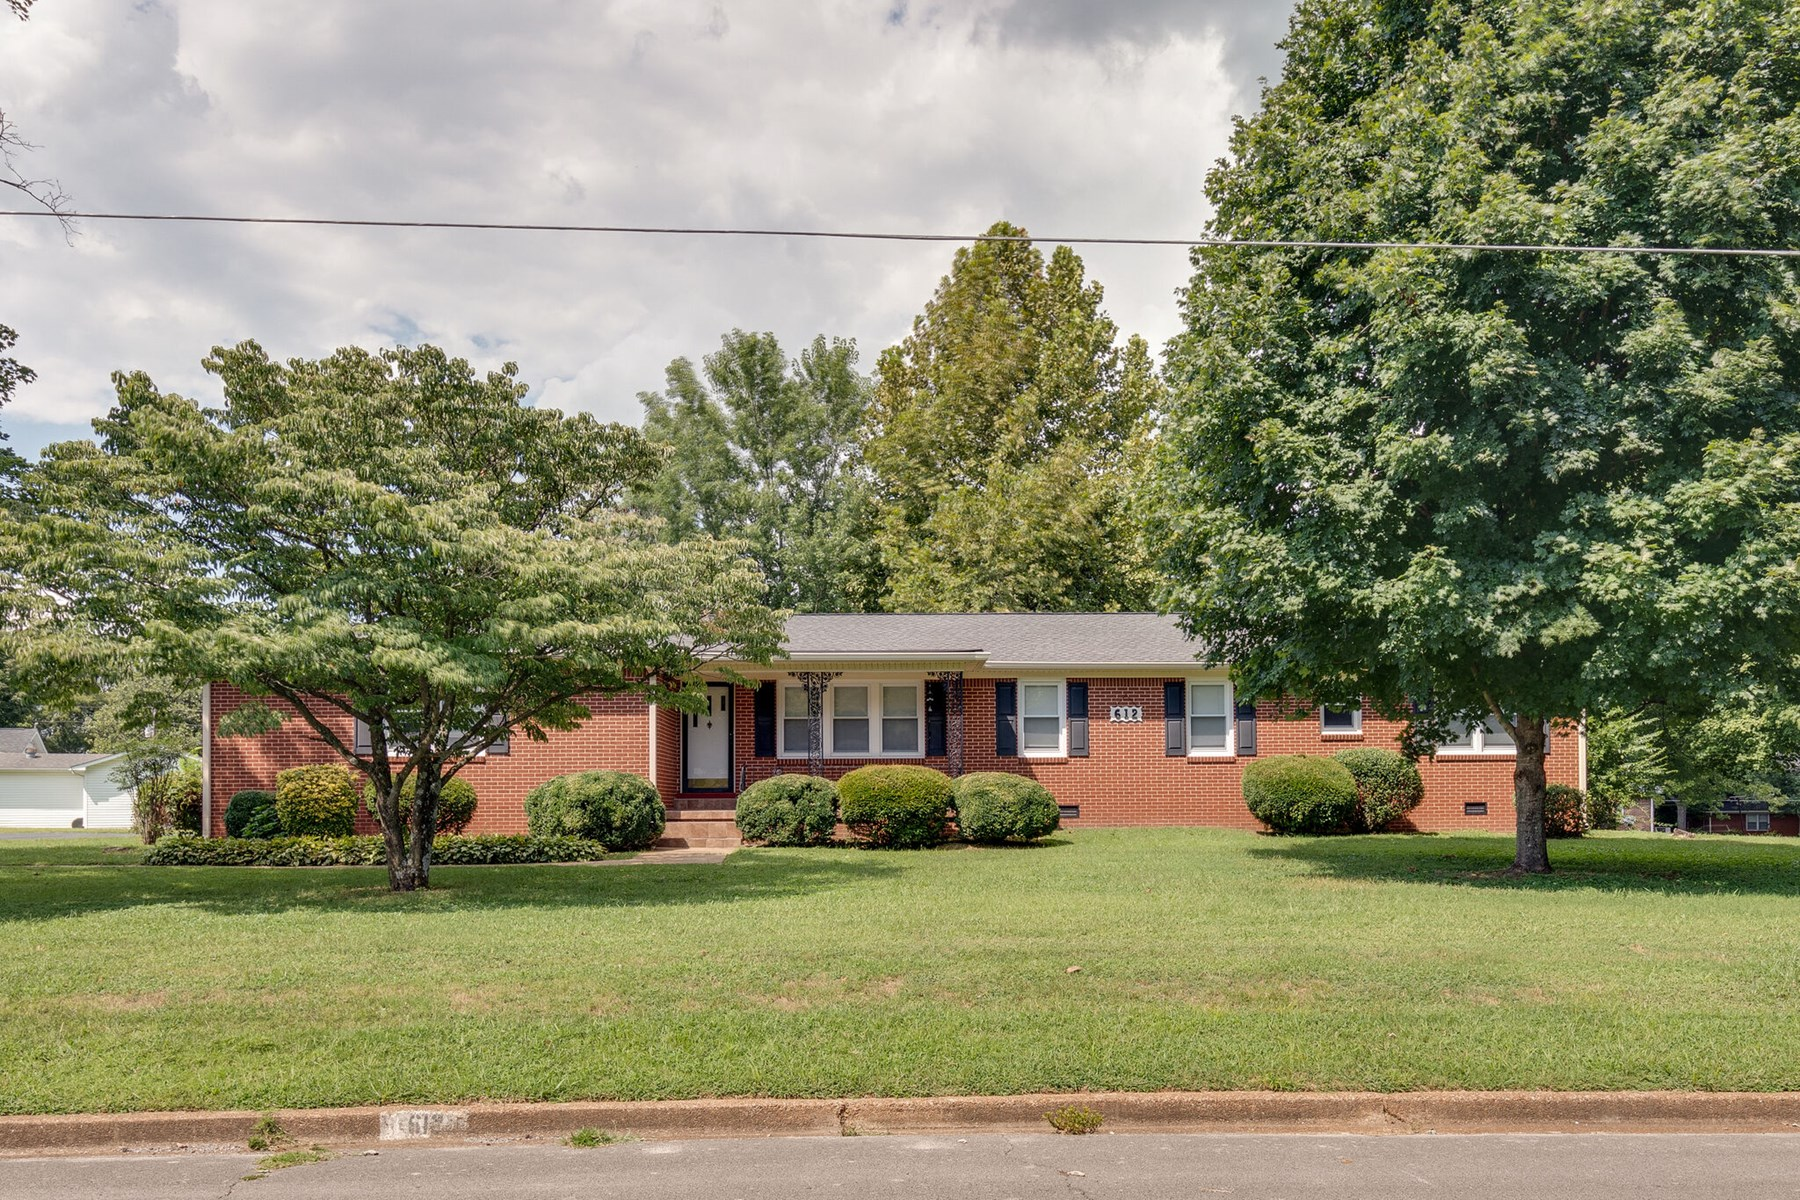 Tennessee Home for Sale in Town in Mt. Pleasant Tennessee